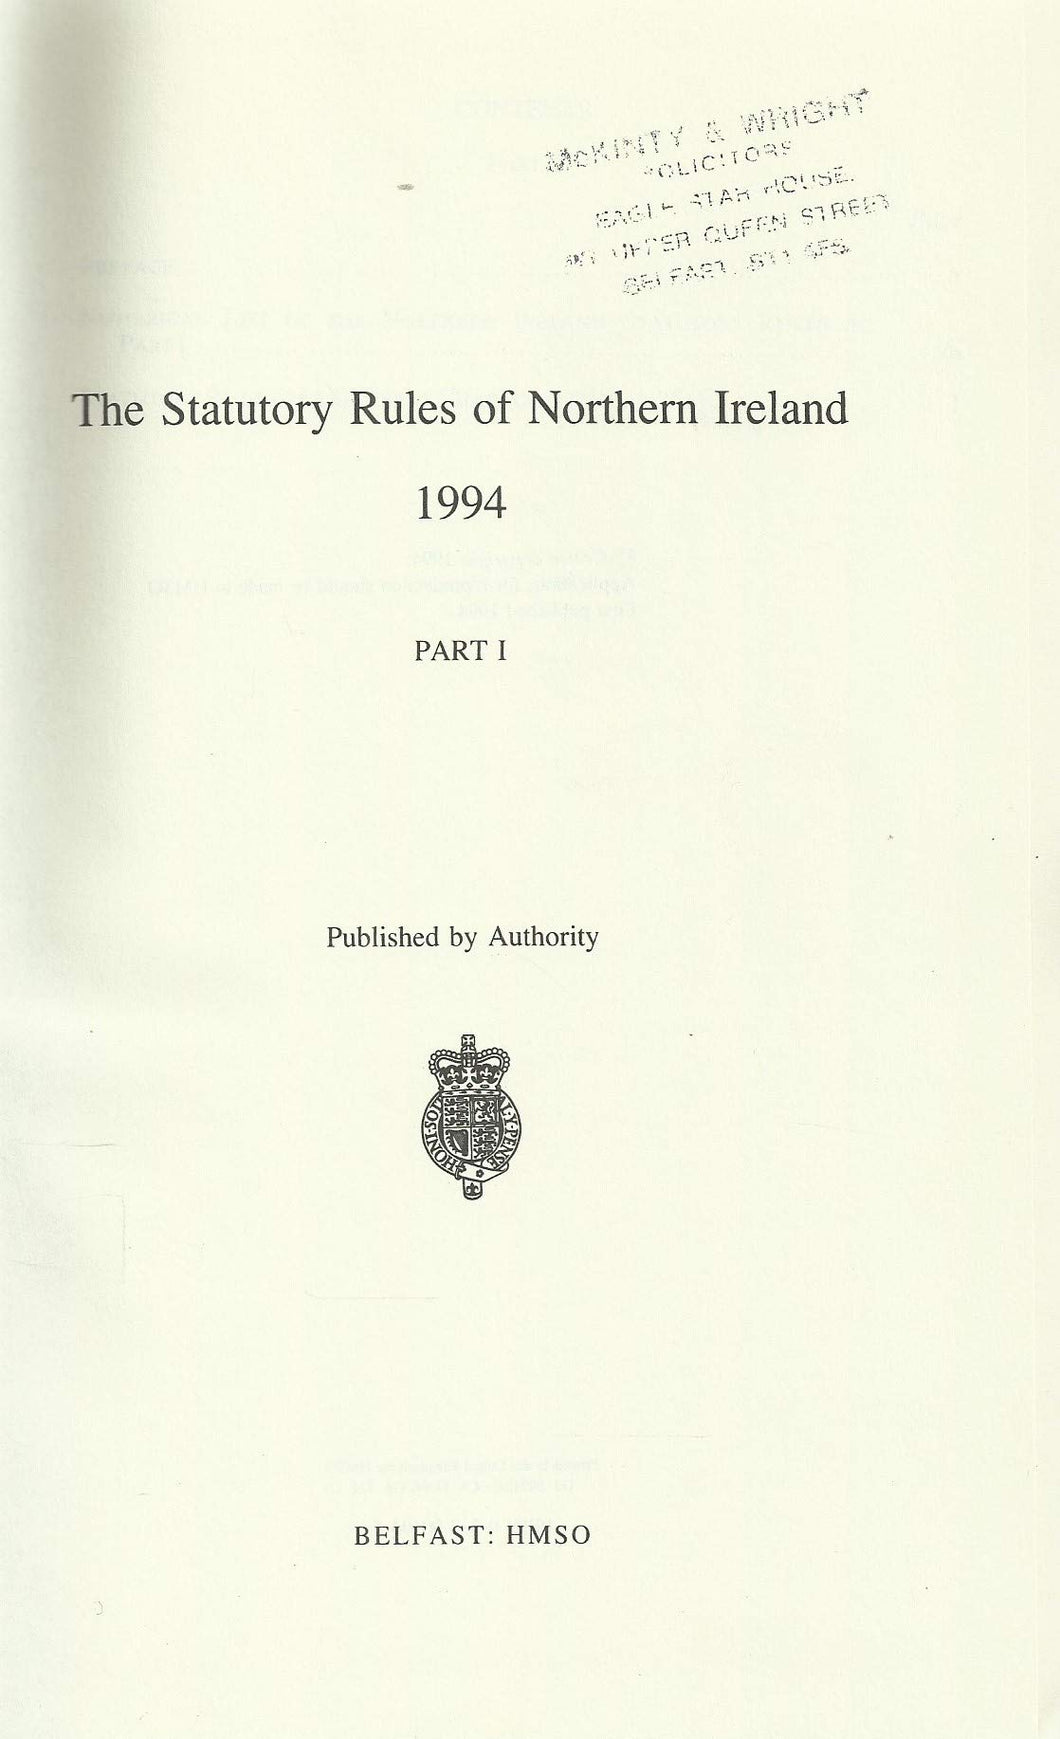 The Statutory Rules of Northern Ireland 1994